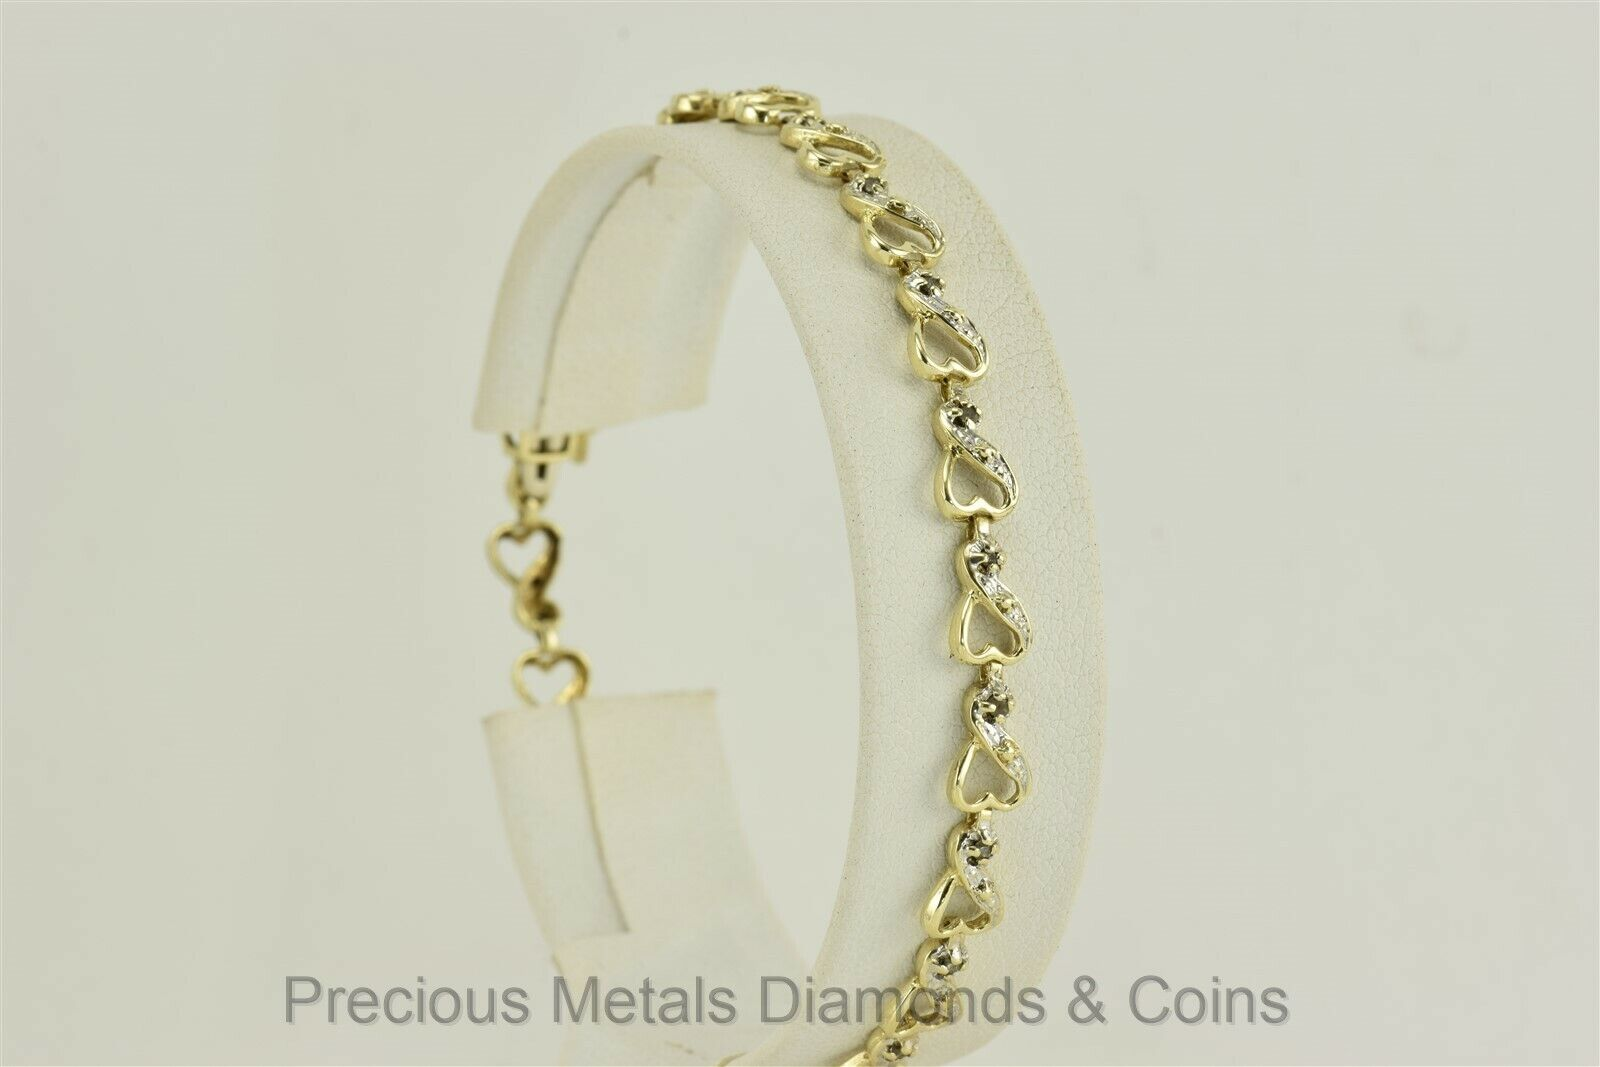 10k Yellow gold Diamond Accented Hearts Linked Bracelet 7.25  x 5.5mm 5.3g